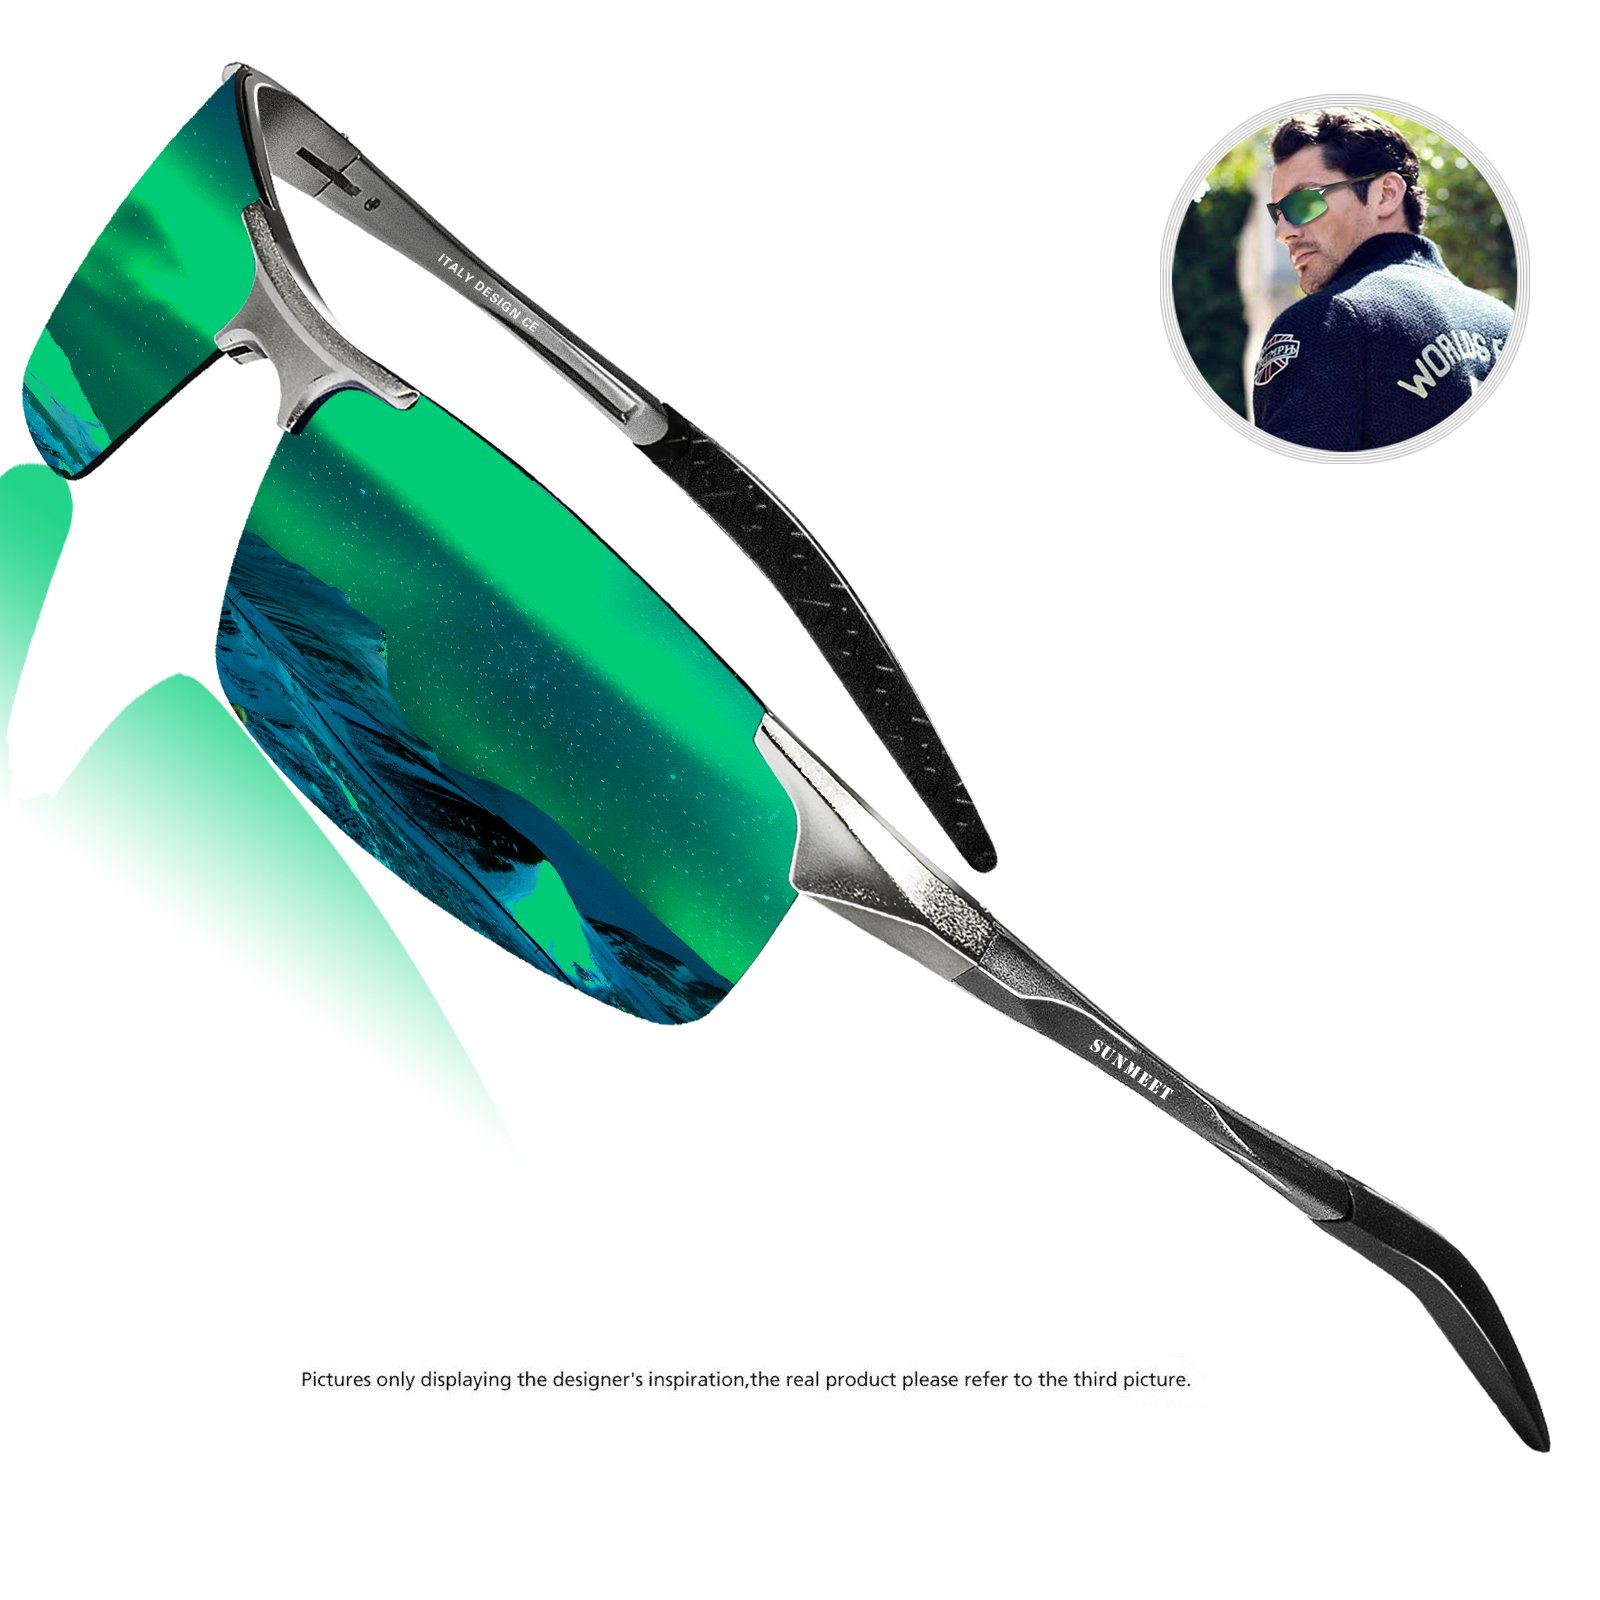 Polarized Driving Sunglasses For Men - SUNMEET Ultra Lightweight Al-Mg Golf Fishing Sports Metal Sunglasses(Green/Silver)